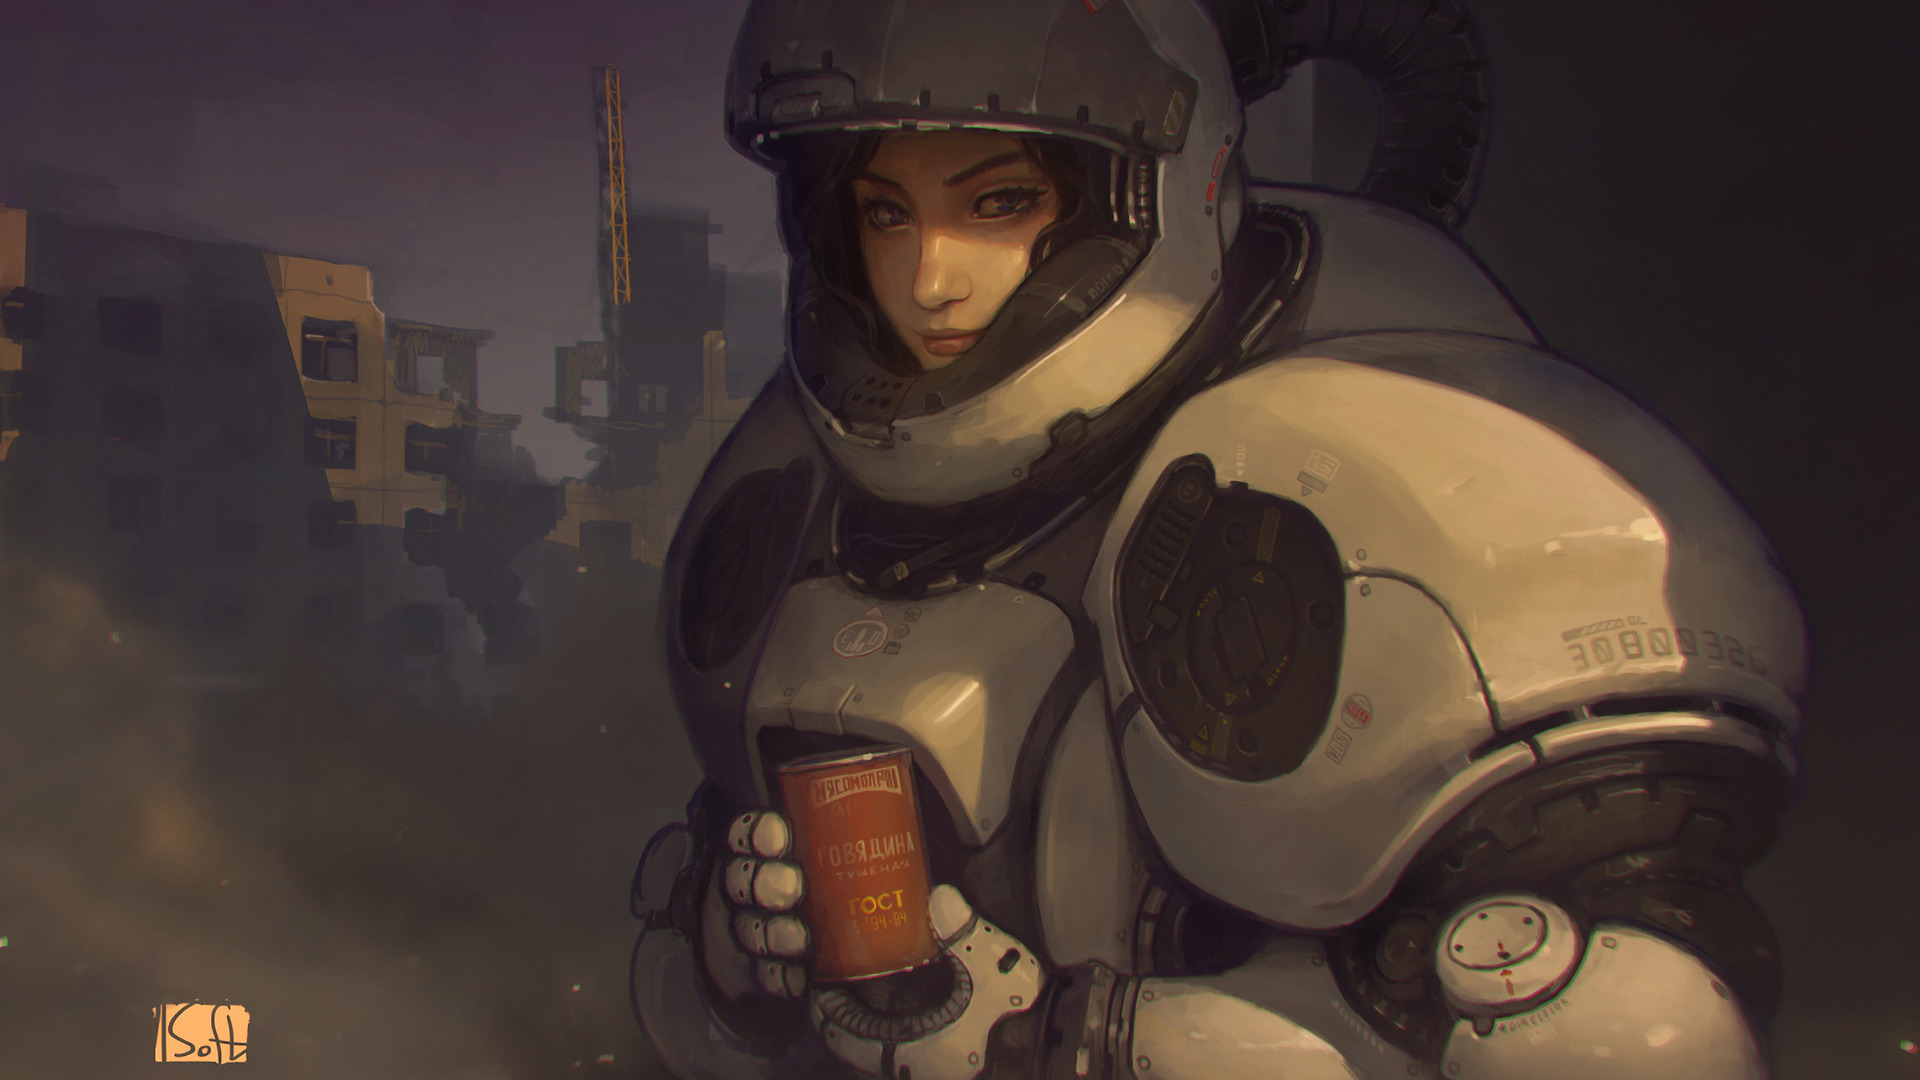 Futurist Anime Girl Wallpaper Drawing Science Fiction Digital Art Space Suit